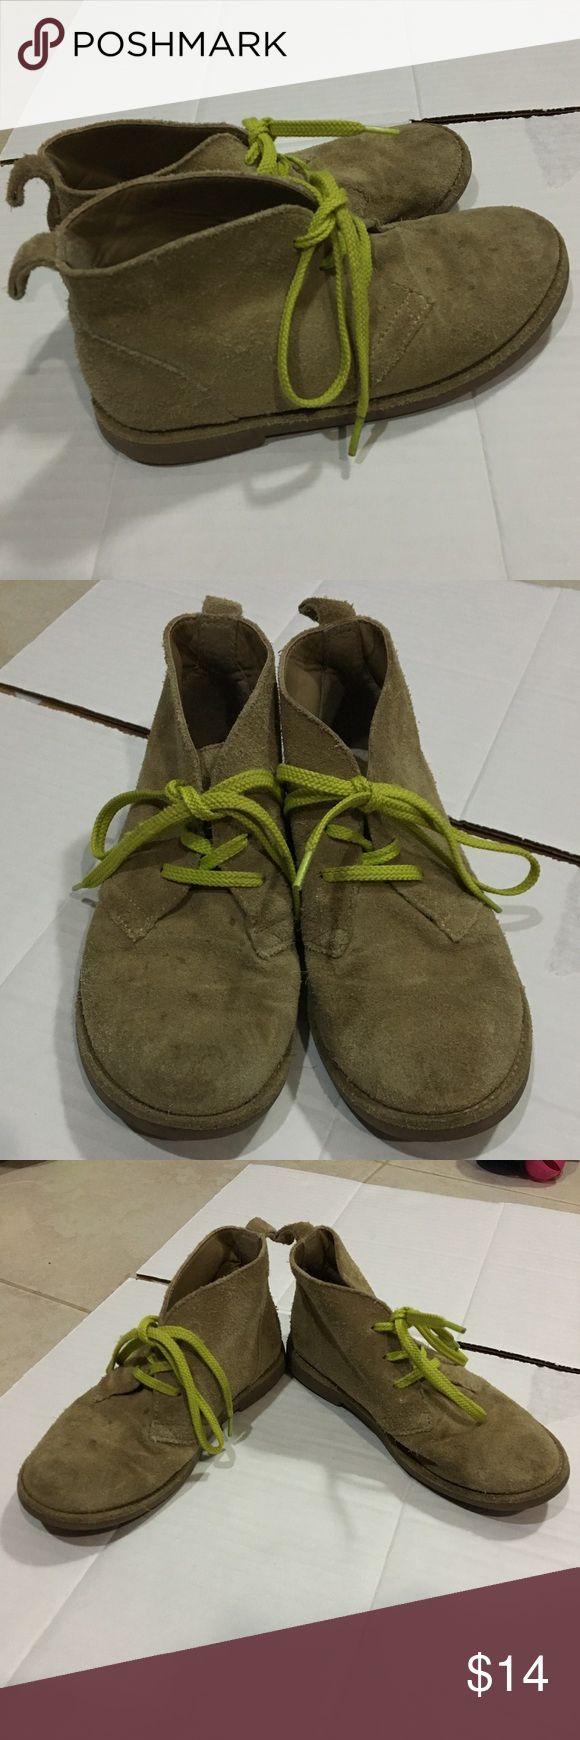 Lands' End Youth 13M Suede Chukka Boots Suede chukka desert boots with lime color shoelaces Gently worn, still in excellent condition  Minor dot stains on right boot Bundle multiple items and pay for shipping once Lands' End Shoes Boots